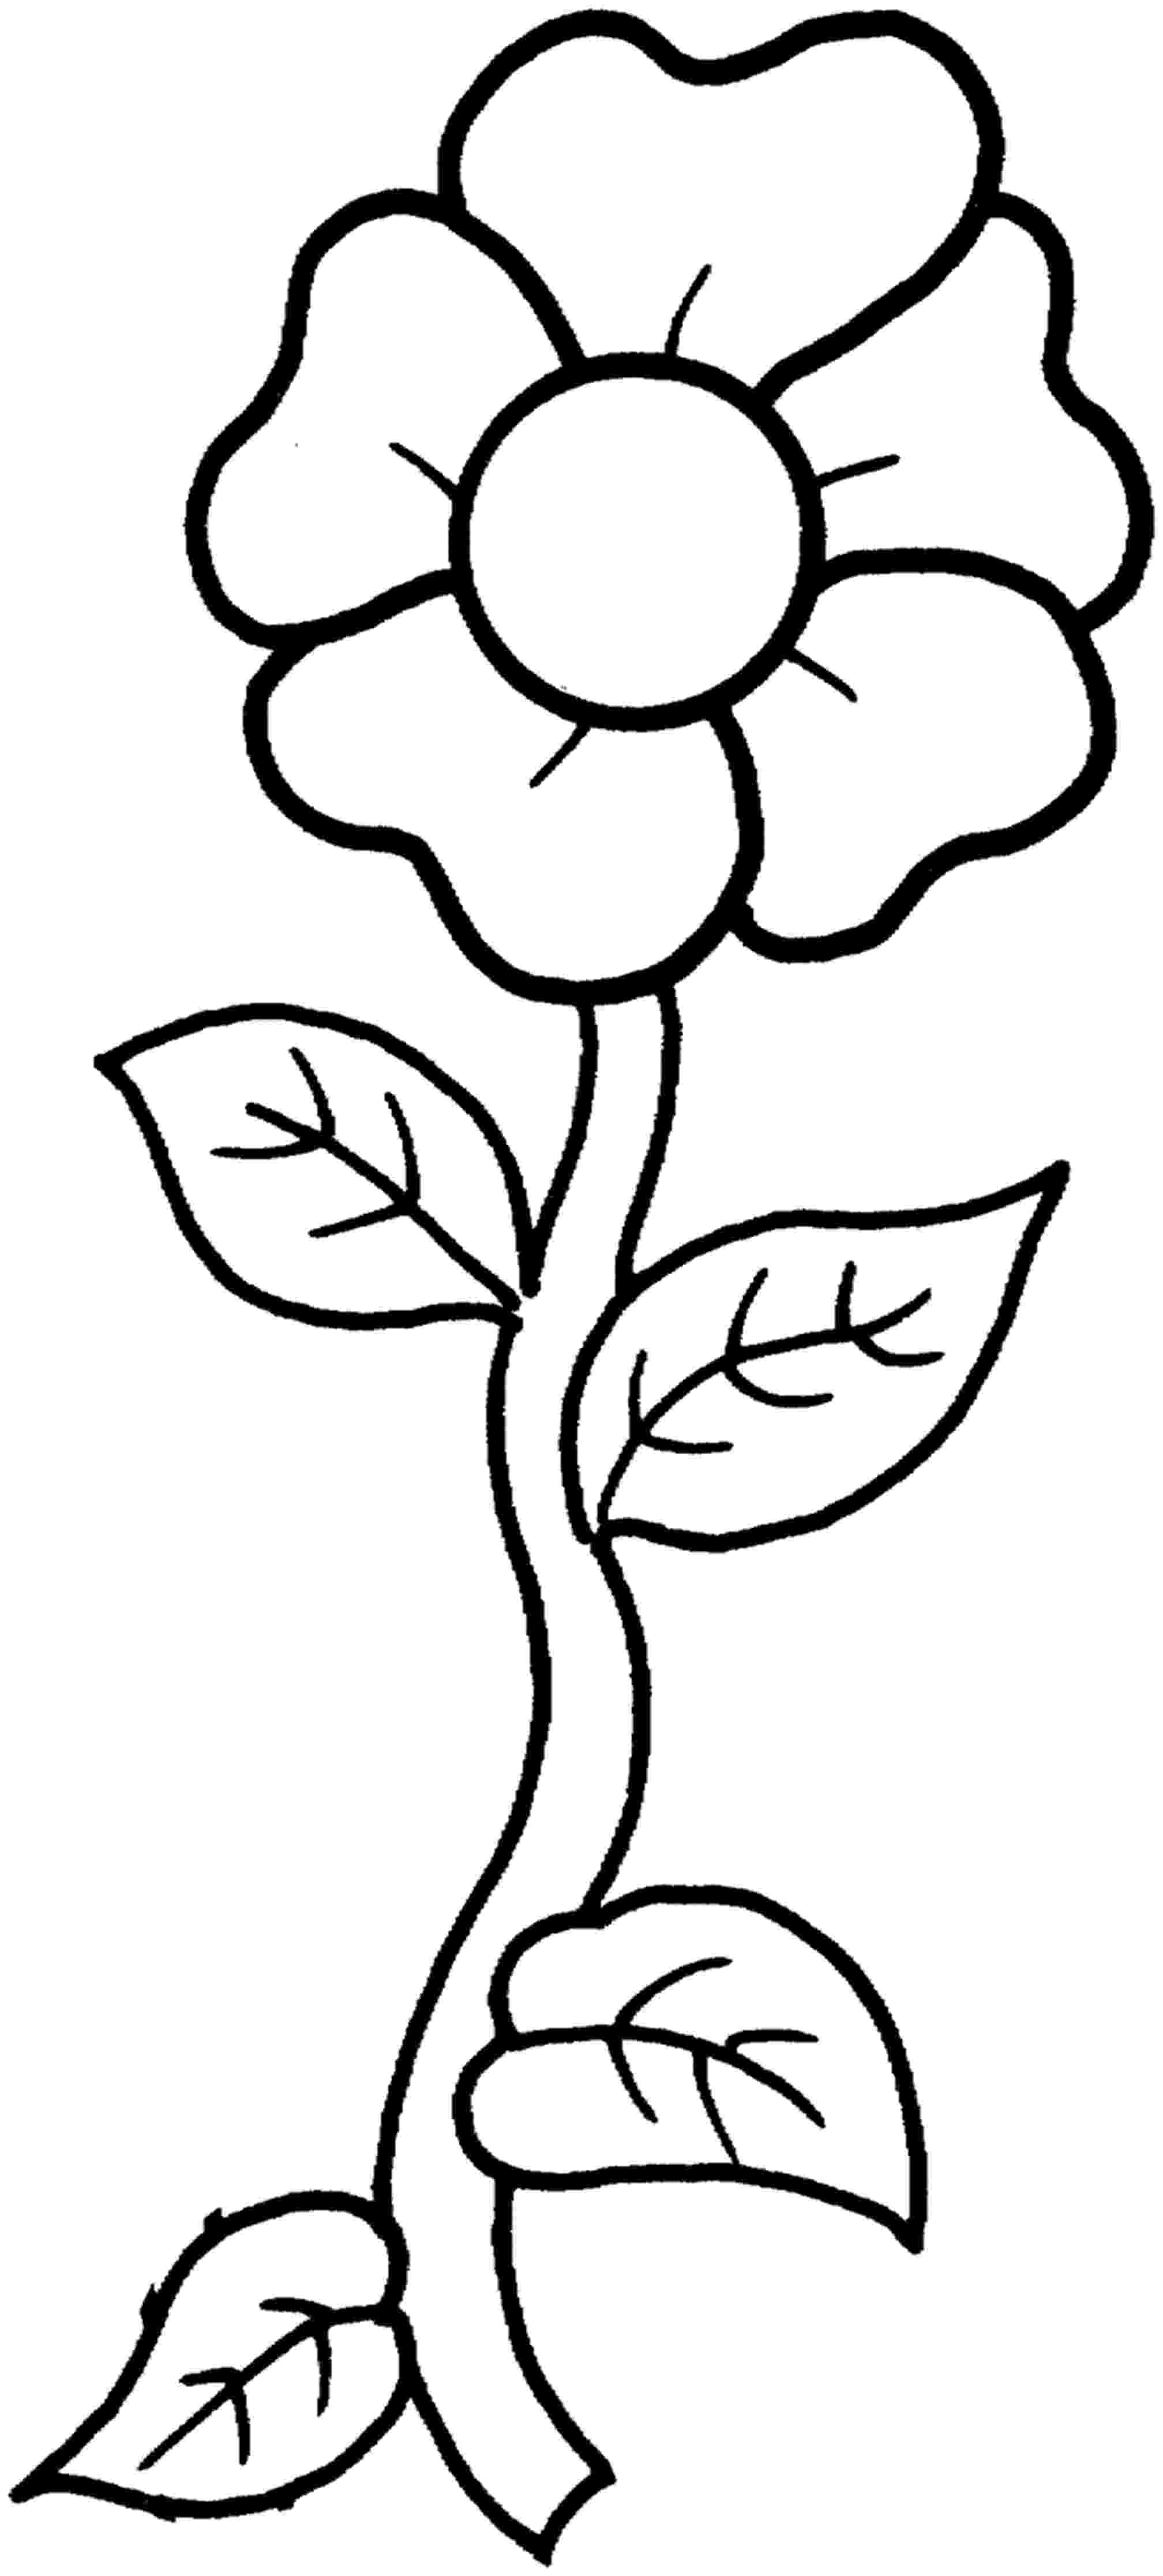 color pictures of flowers free printable flower coloring pages for kids best flowers pictures color of